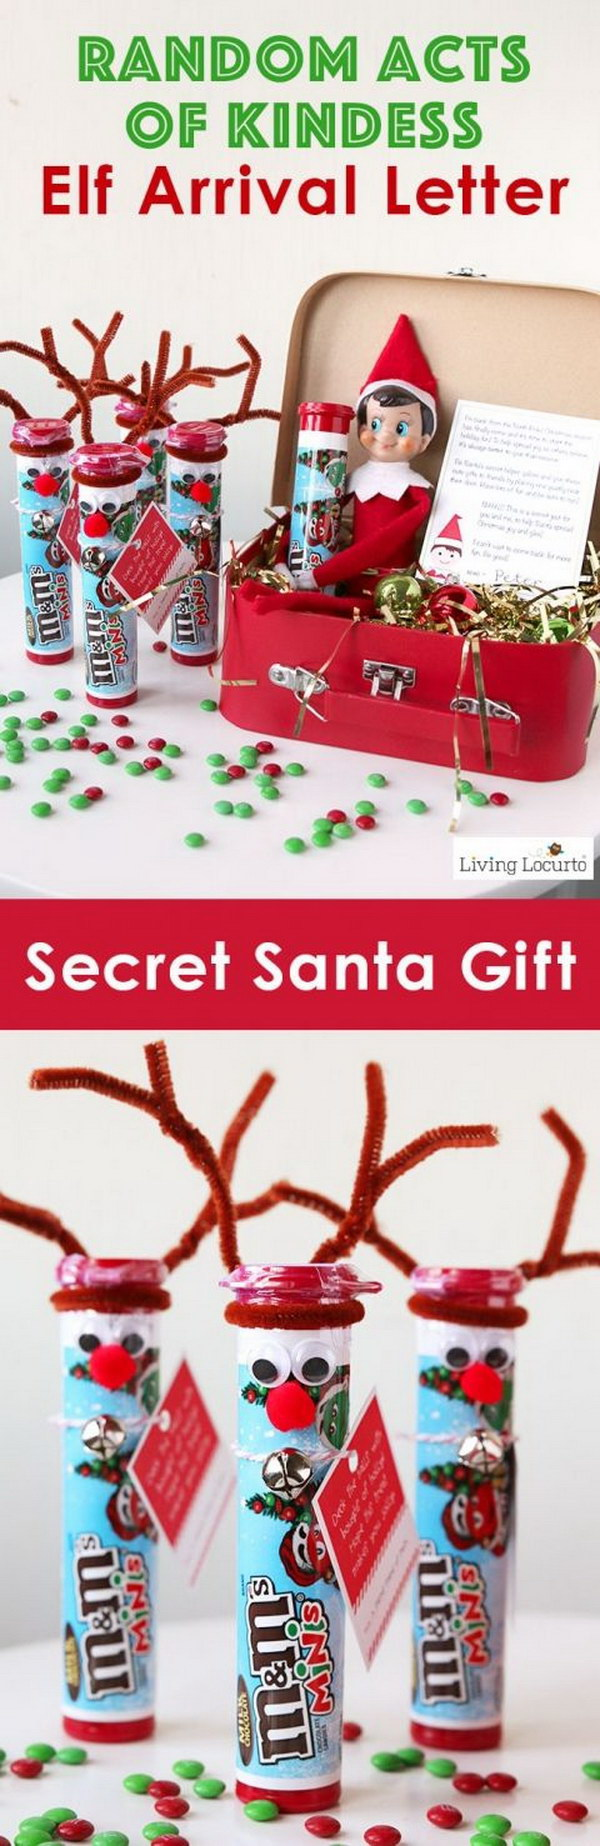 3 DIY Rudolph the Red Nosed Reindeer Candy Gift